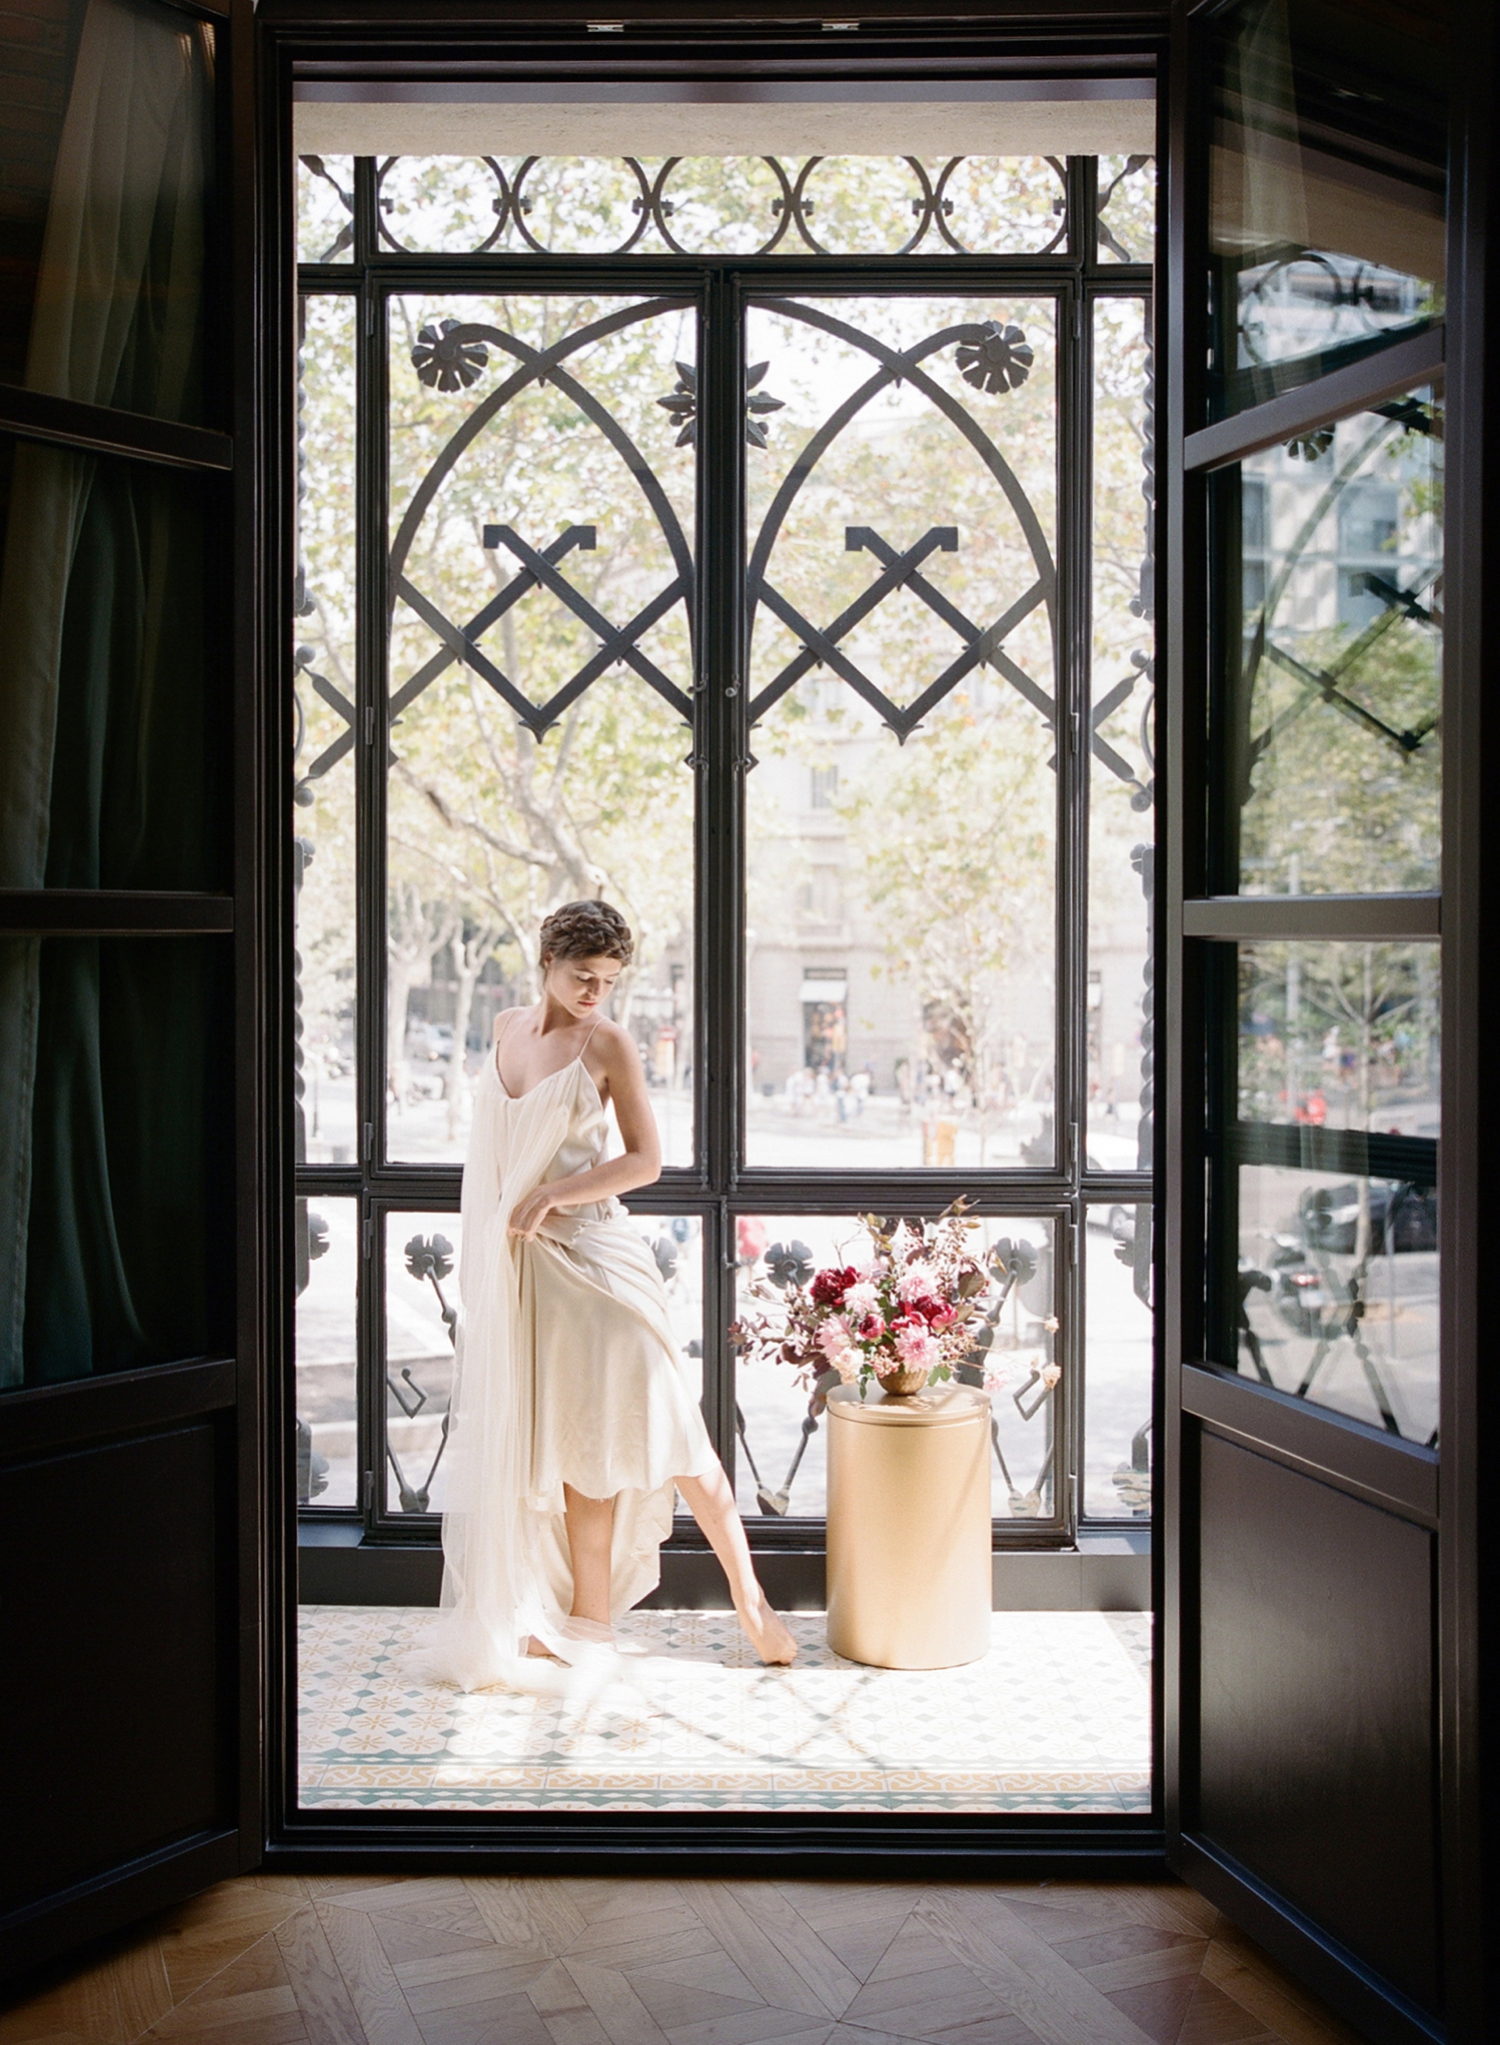 Barcelona Destination Film Boudoir Session